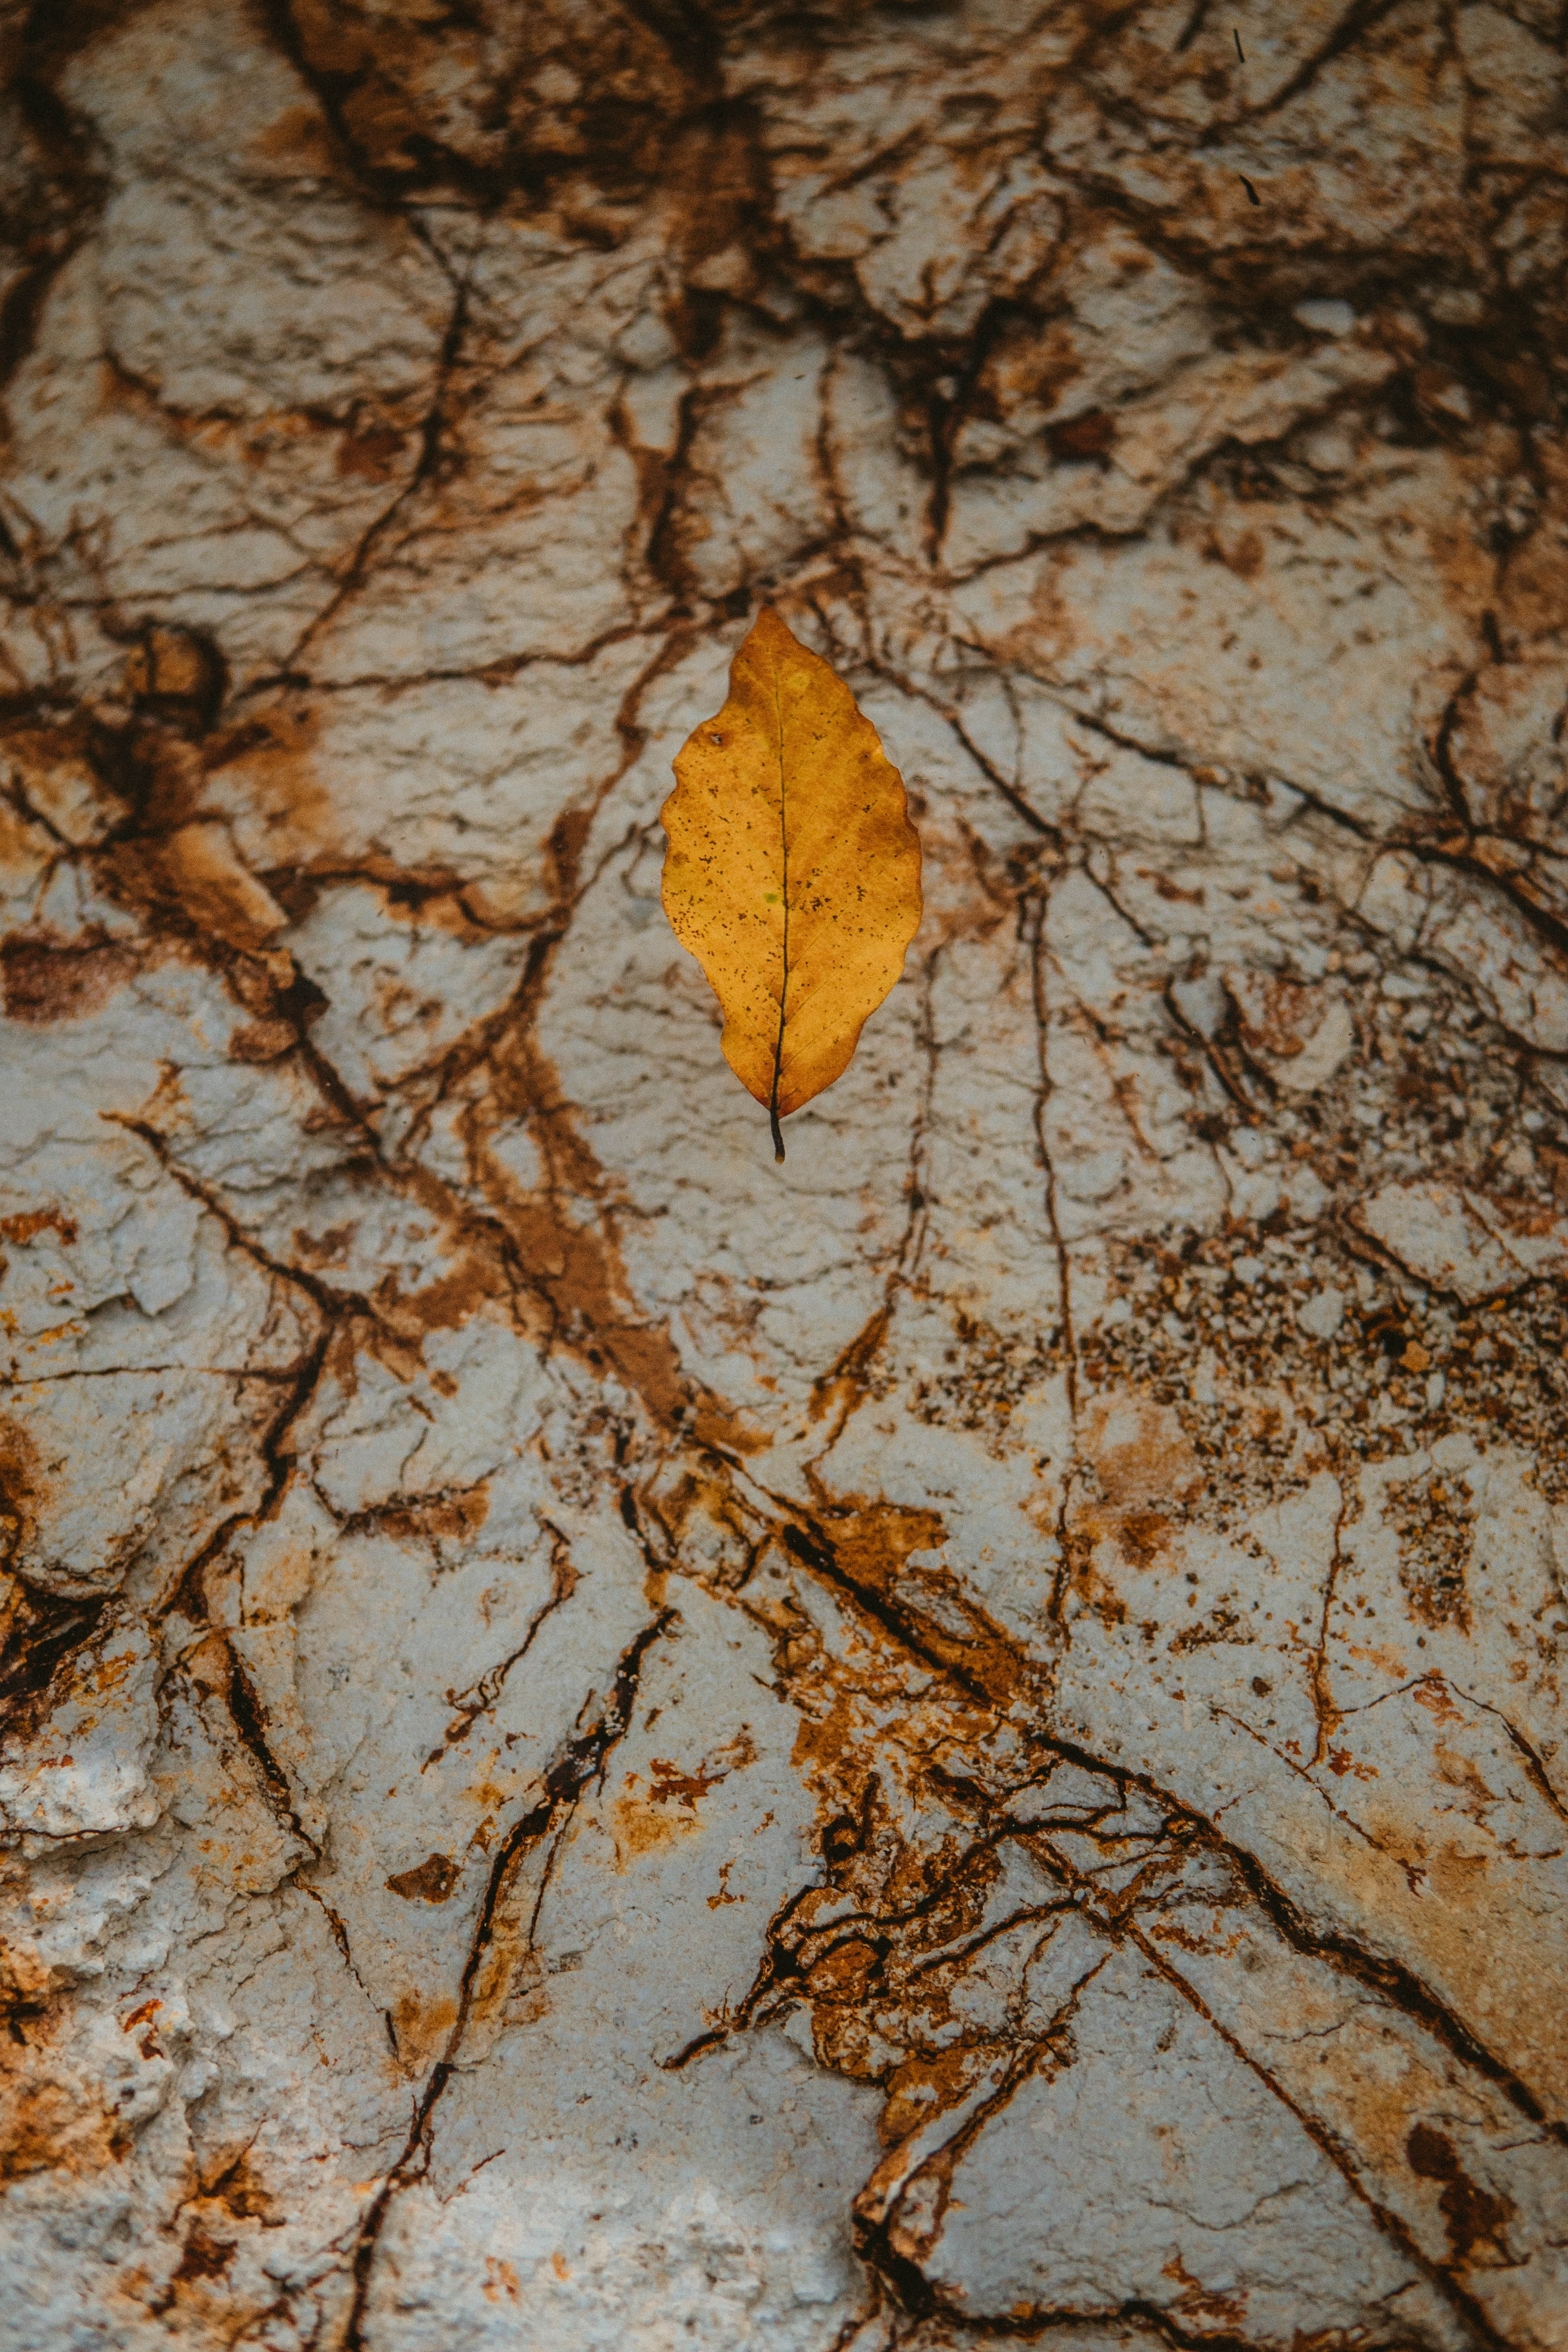 147567 download wallpaper Macro, Leaflet, Dry, Autumn, Rock, Stone screensavers and pictures for free